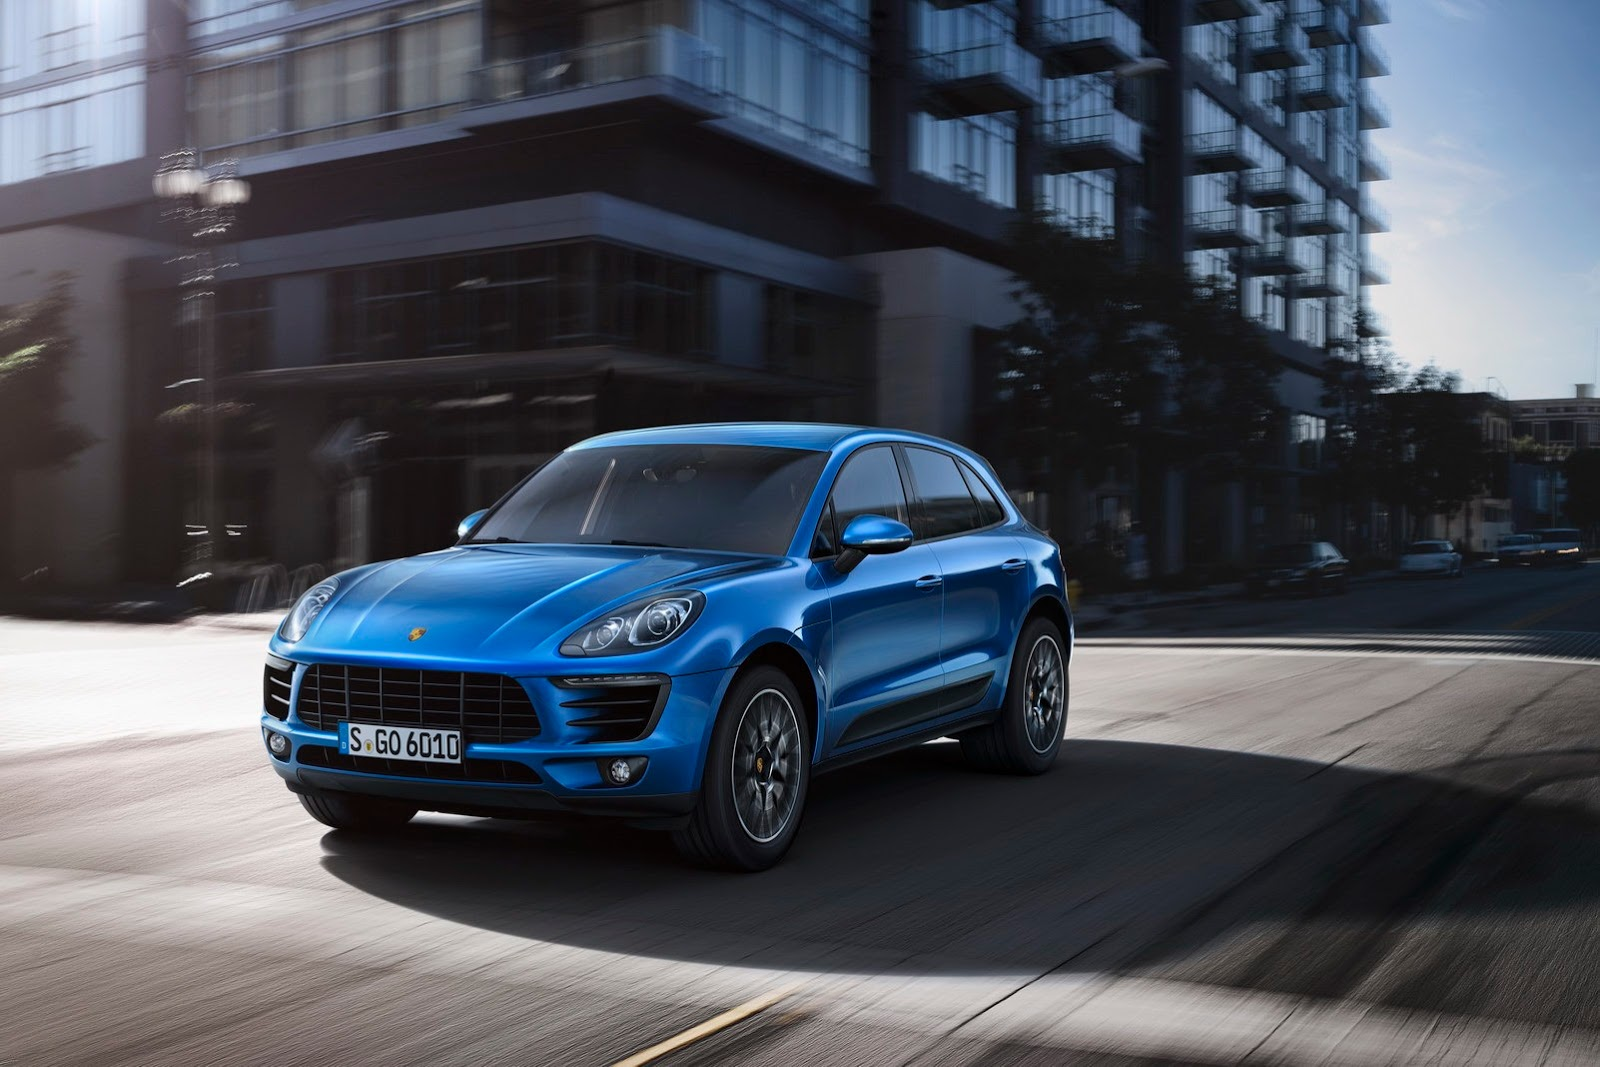 New Porsche Macan SUV to have a base price of USD 50,895 in